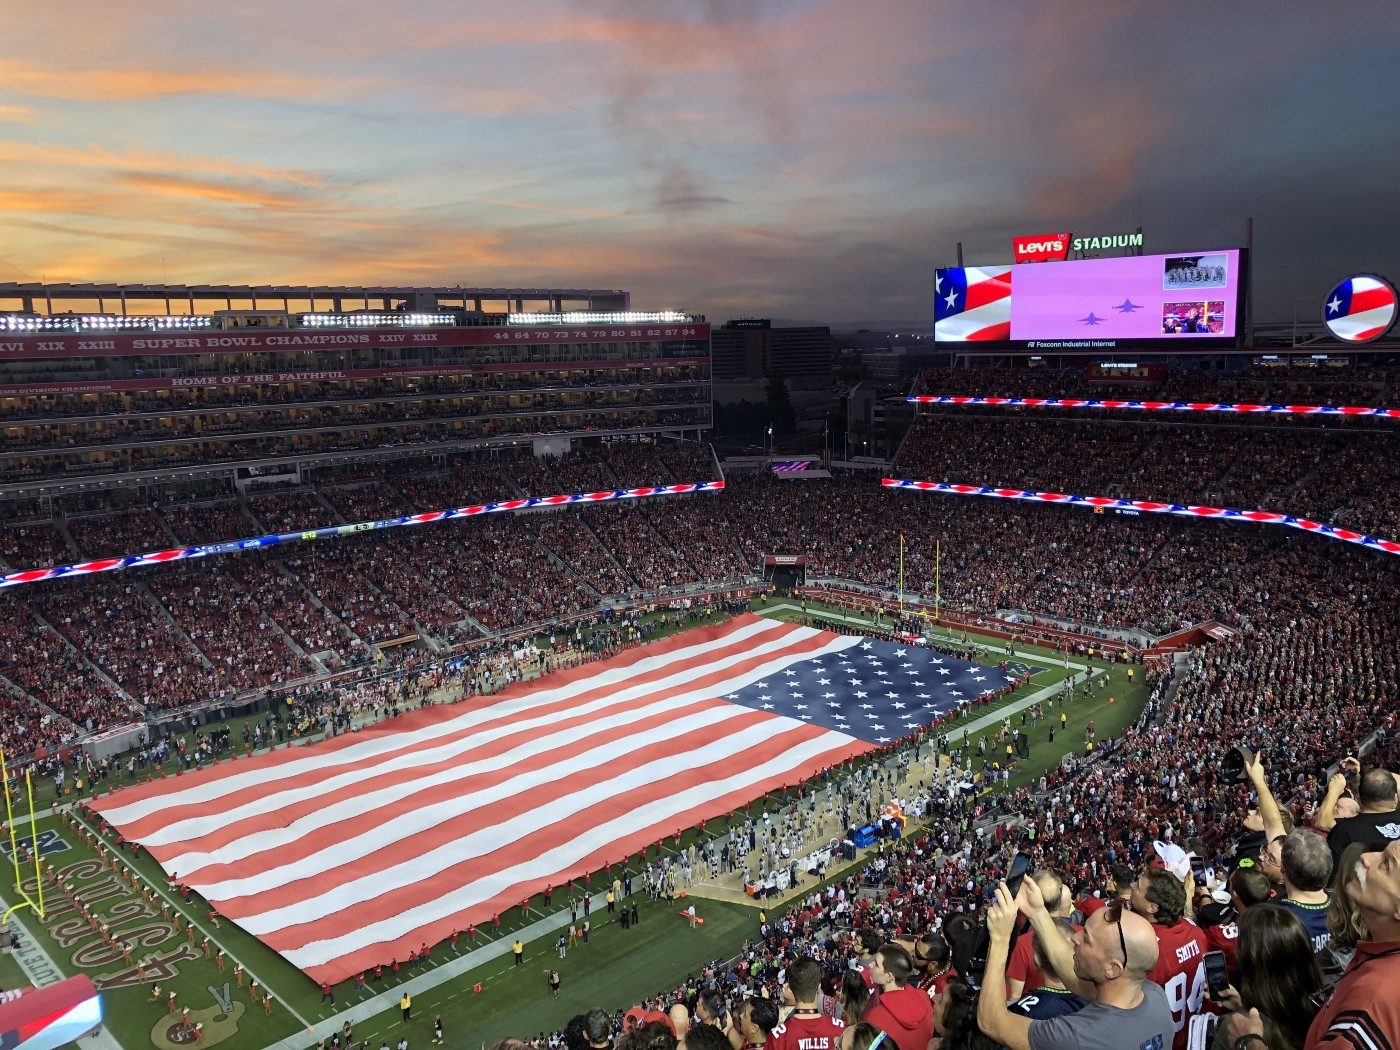 A packed Levi's Stadium (Santa Clara, California) with a massive American flag rolled out onto the field. The sun is setting and there are some clouds in the sky. Fans are taking pictures with their smartphones and cheering loudly.